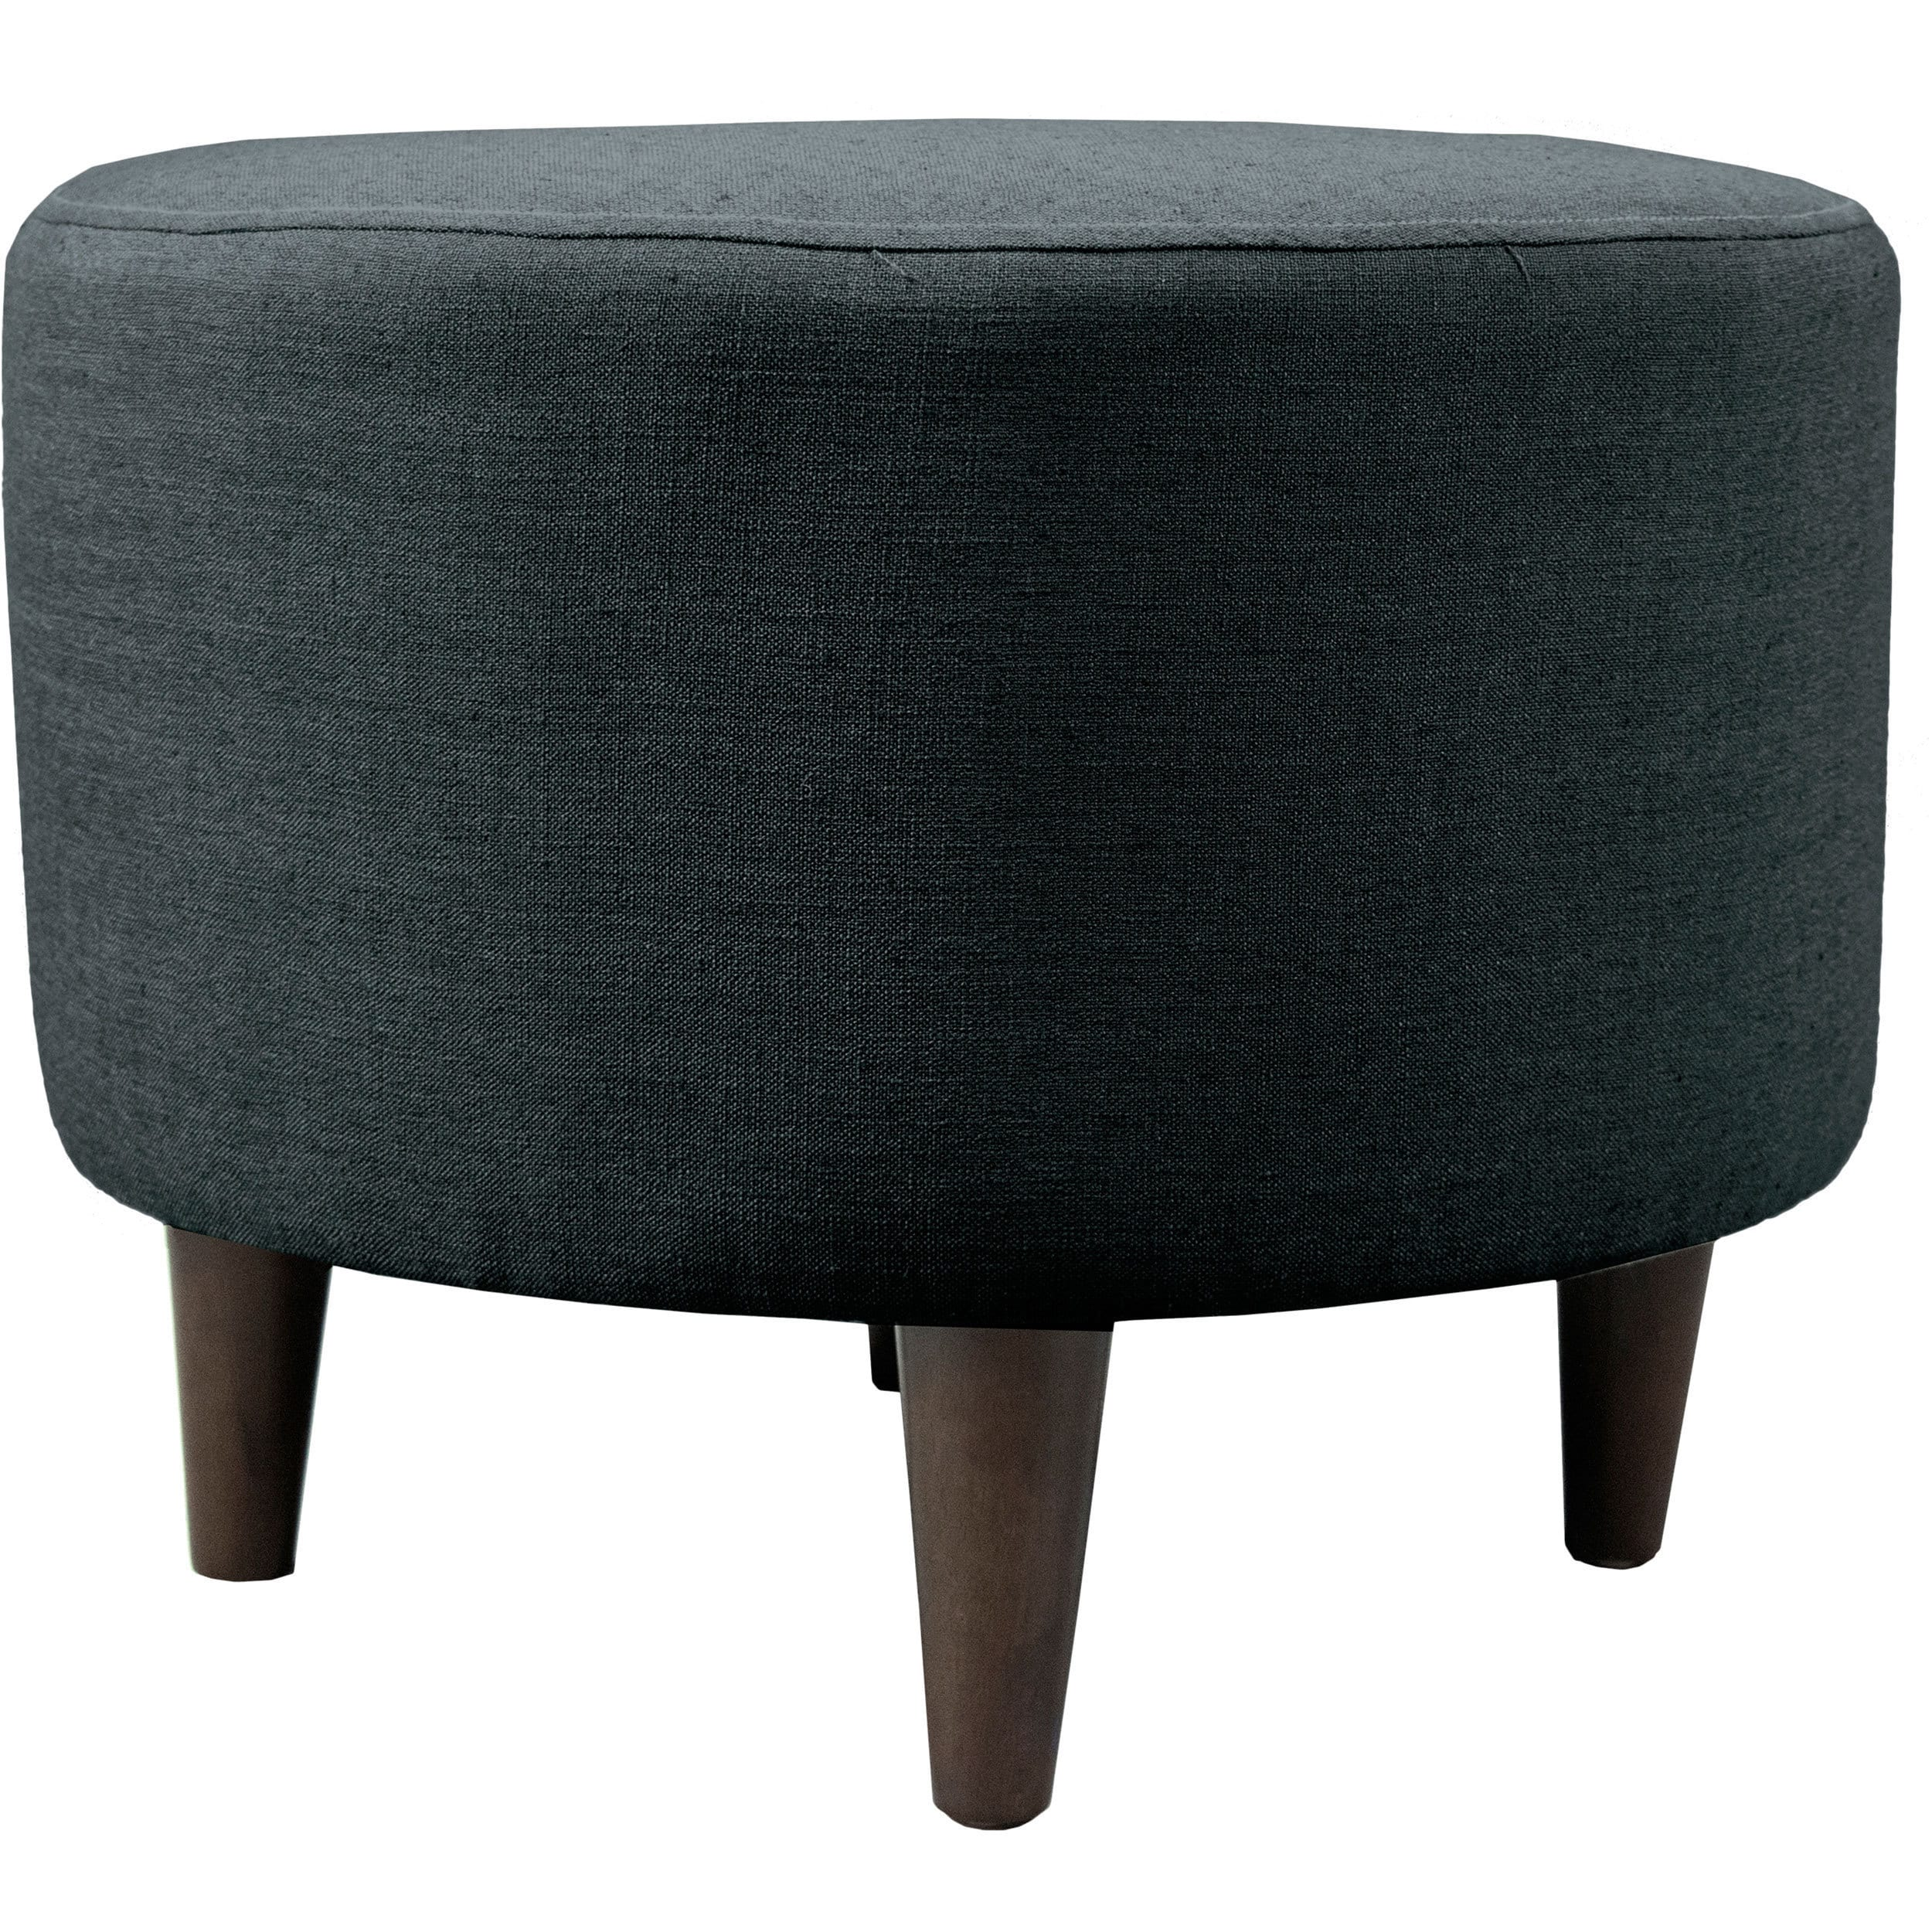 Shop sophia allure round upholstered ottoman on sale free shipping today overstock com 11458880